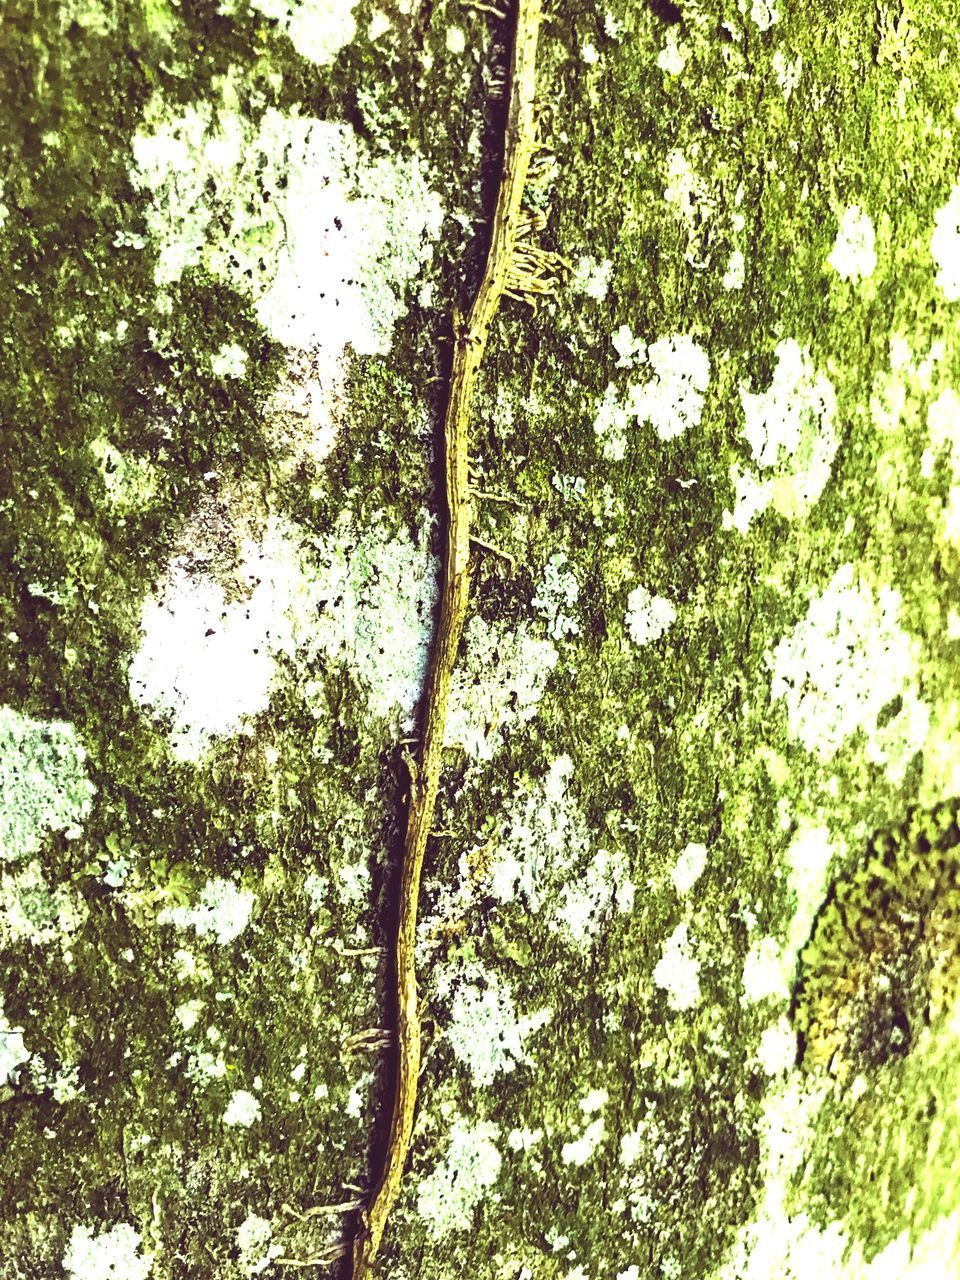 tree, plant, growth, no people, nature, low angle view, day, beauty in nature, tree trunk, trunk, outdoors, green color, full frame, tranquility, branch, forest, plant part, backgrounds, leaf, close-up, directly below, tree canopy